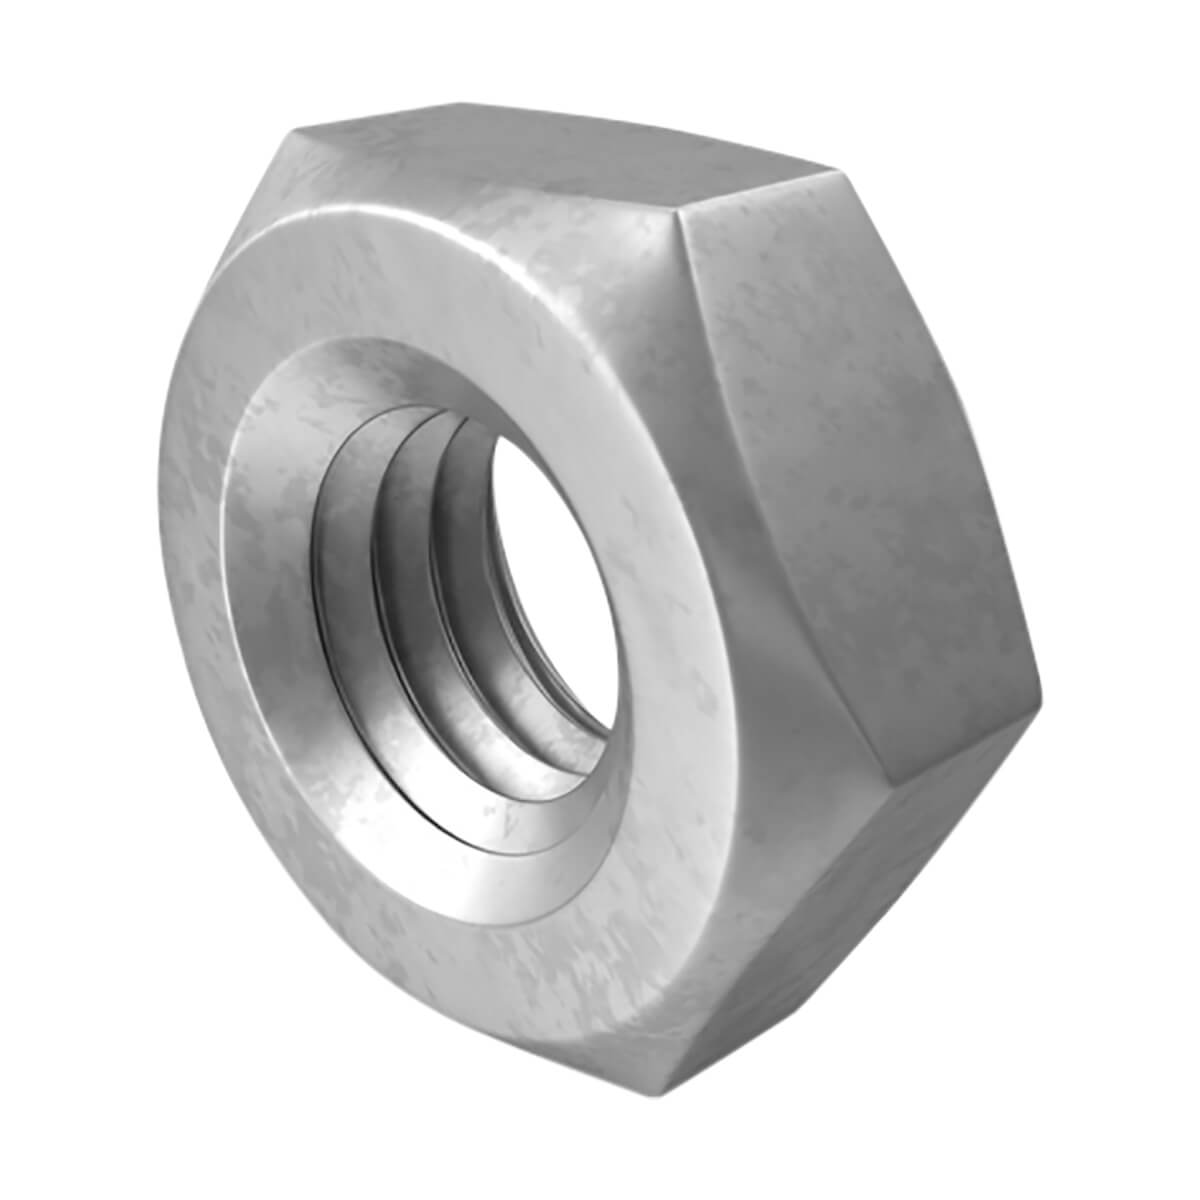 Hexagonal Nut - Stainless Steel - M10 X 1.50 Pitch - 5-Pack